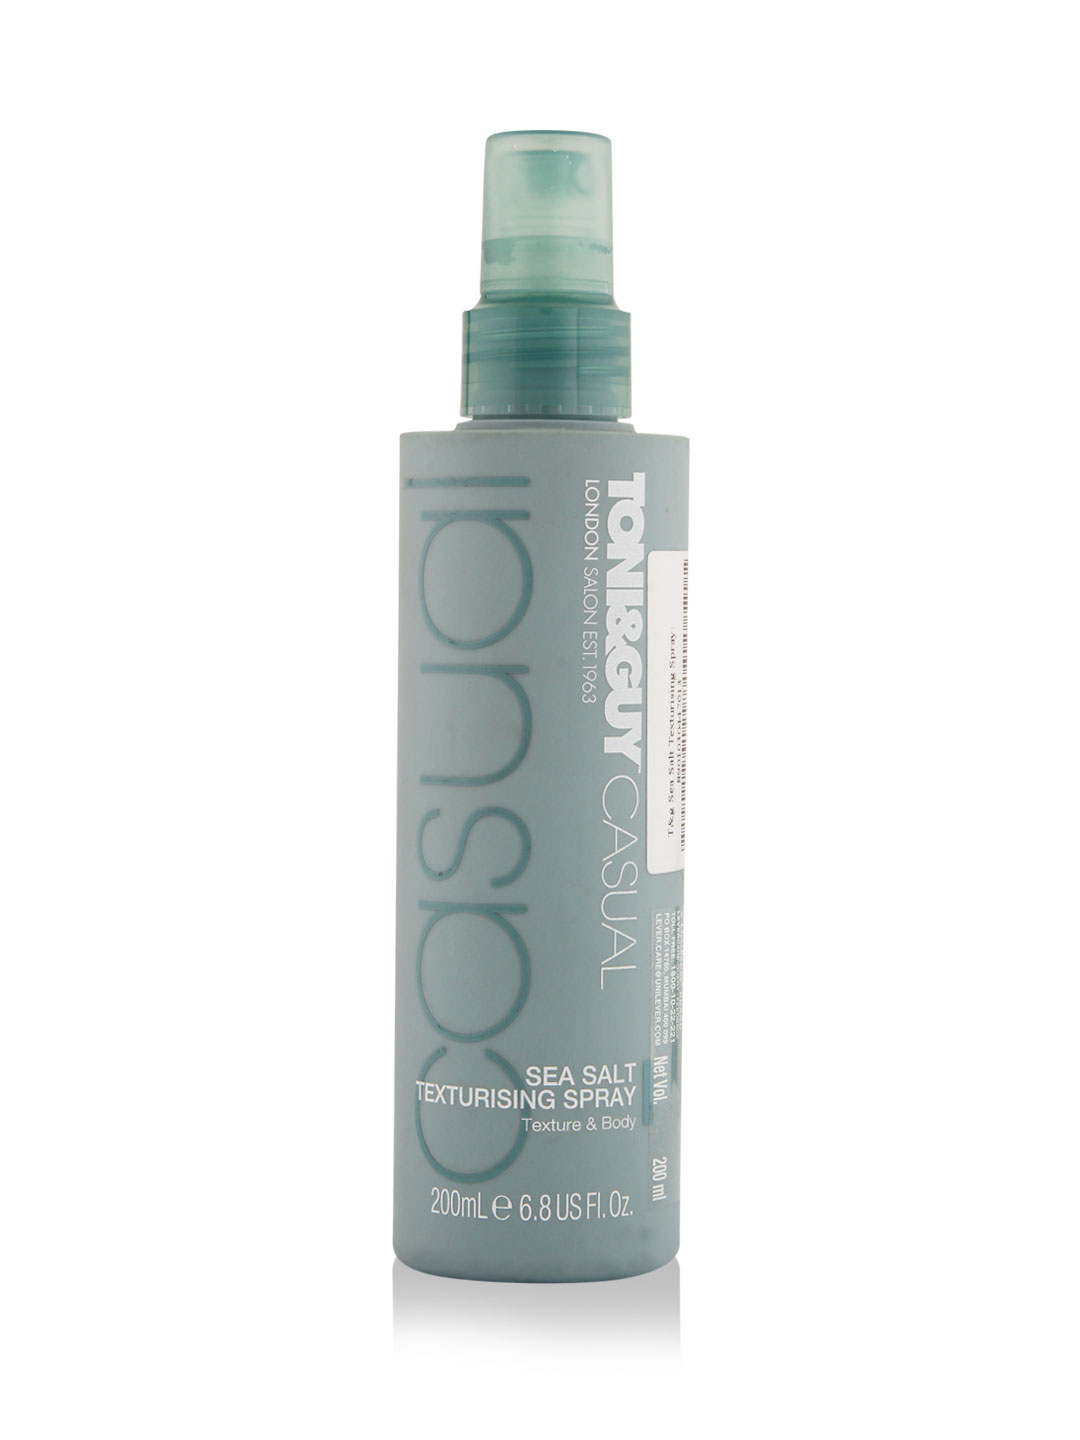 Toni & Guy No/Color/SKU TONI AND GUY Sea Salt Texturising Spray 1